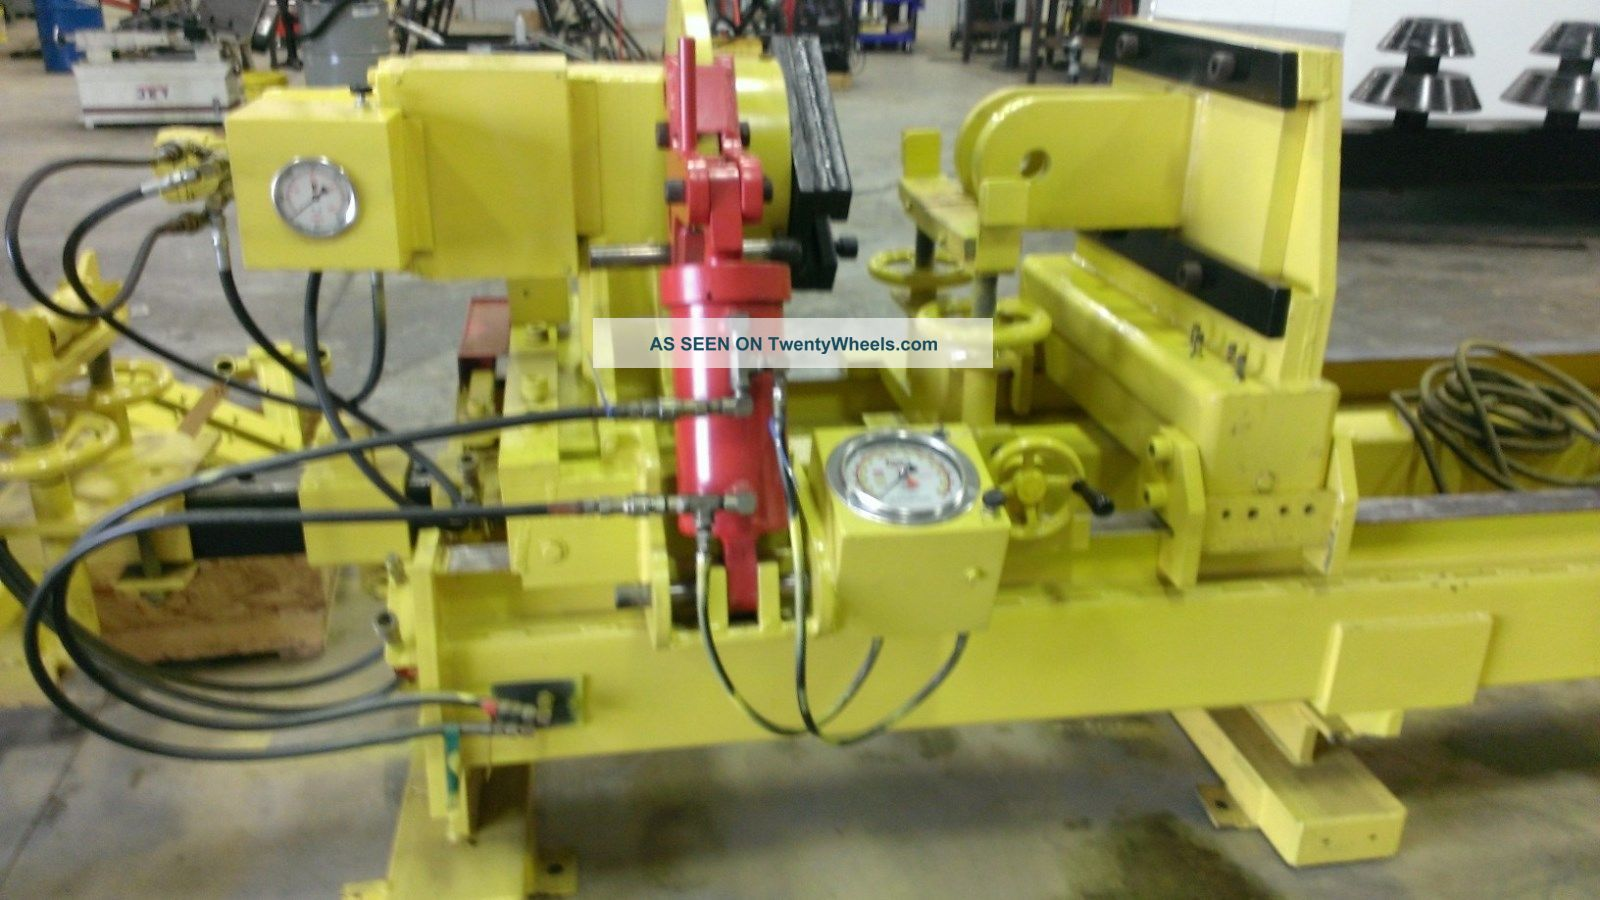 Tuxco Model Hcs - 60 Hydraulic Cylinder Disassembly & Service Machine